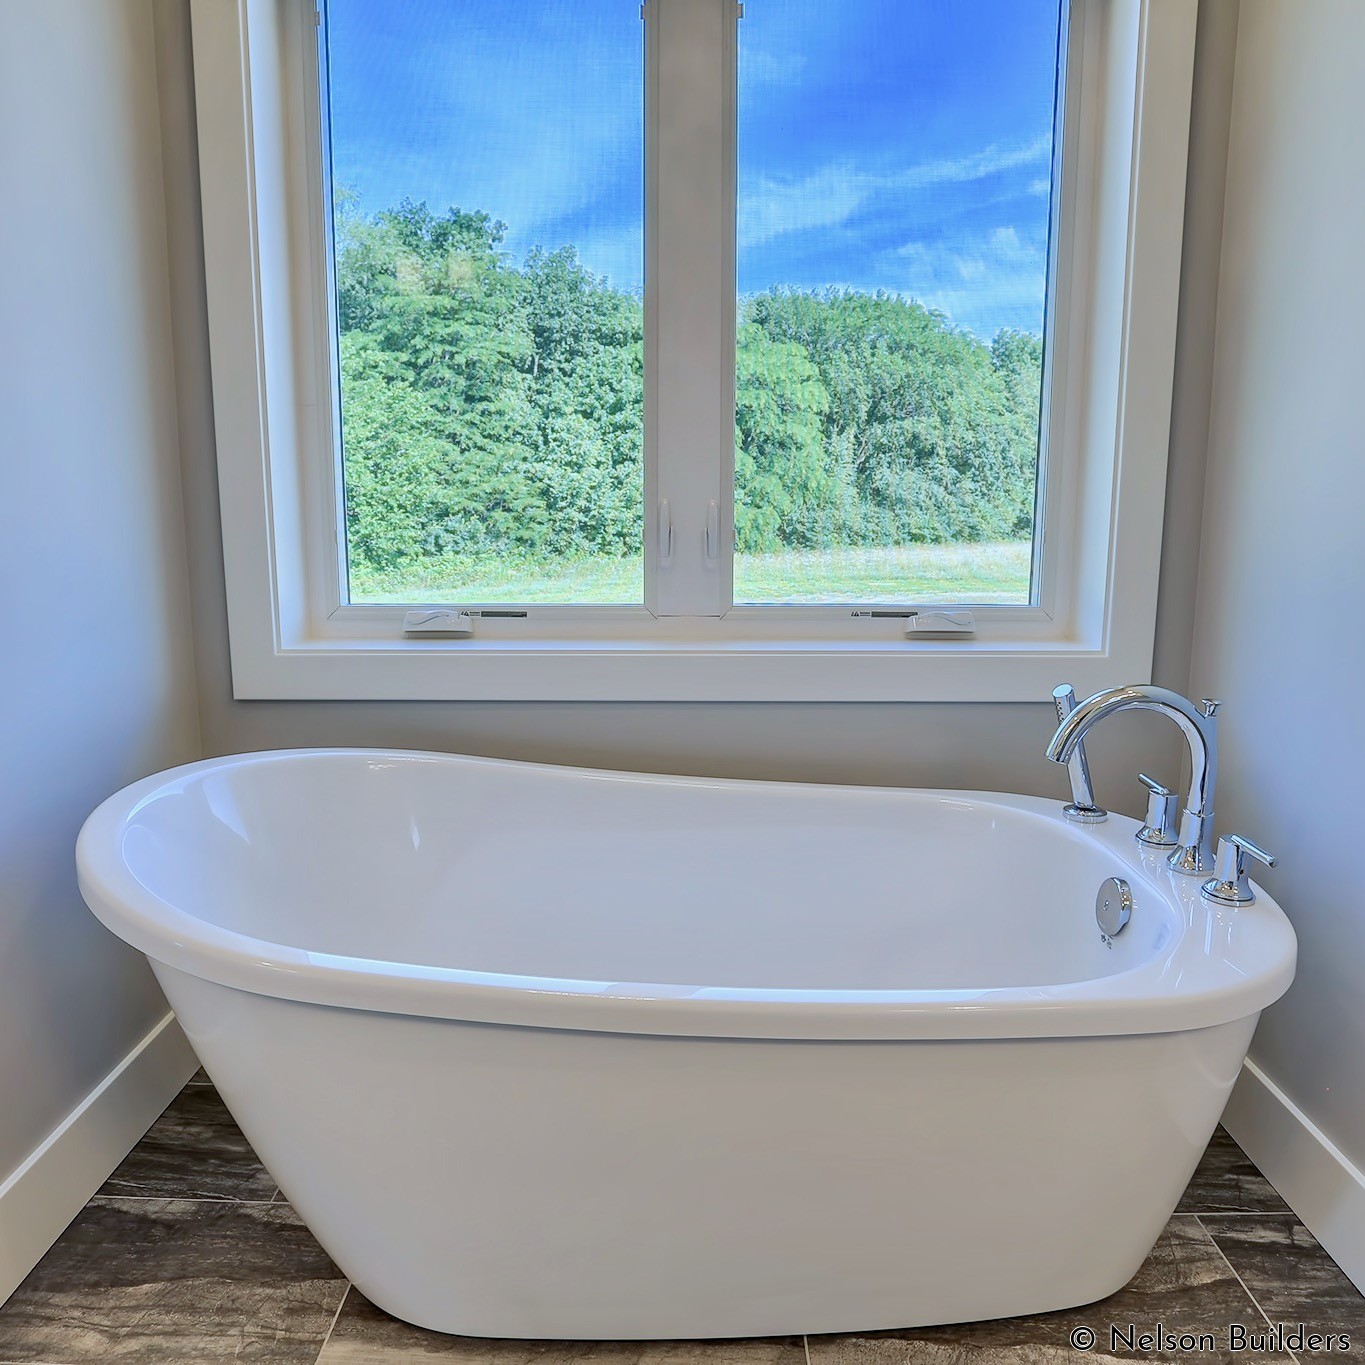 Even the master bathroom has a cozy spot to take in the views while enjoying a bath.